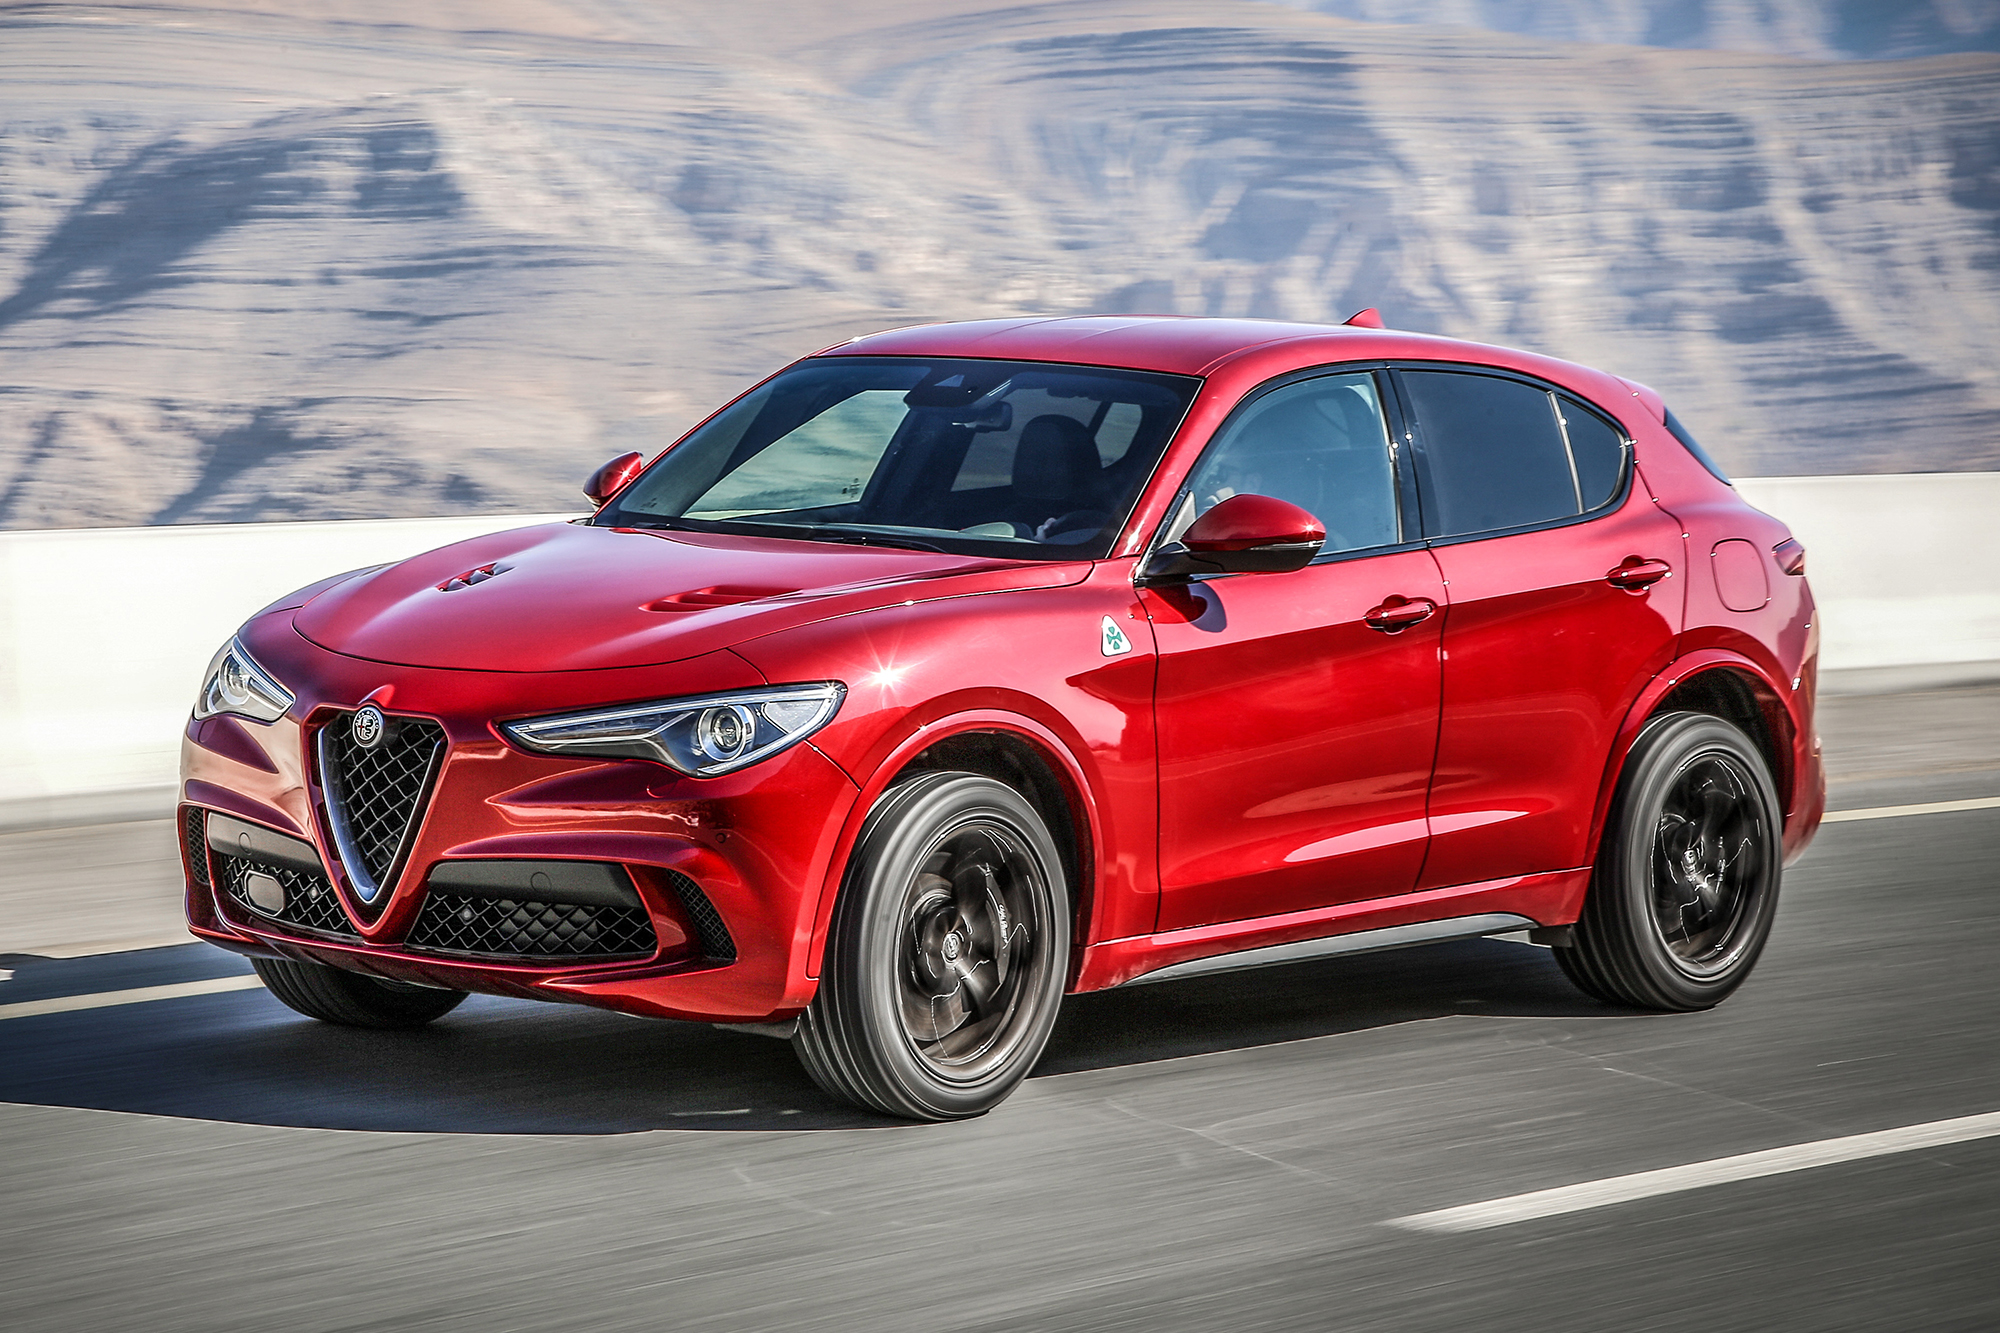 alfa romeo stelvio quadrifoglio su strada il suv pi sportivo qn motori. Black Bedroom Furniture Sets. Home Design Ideas